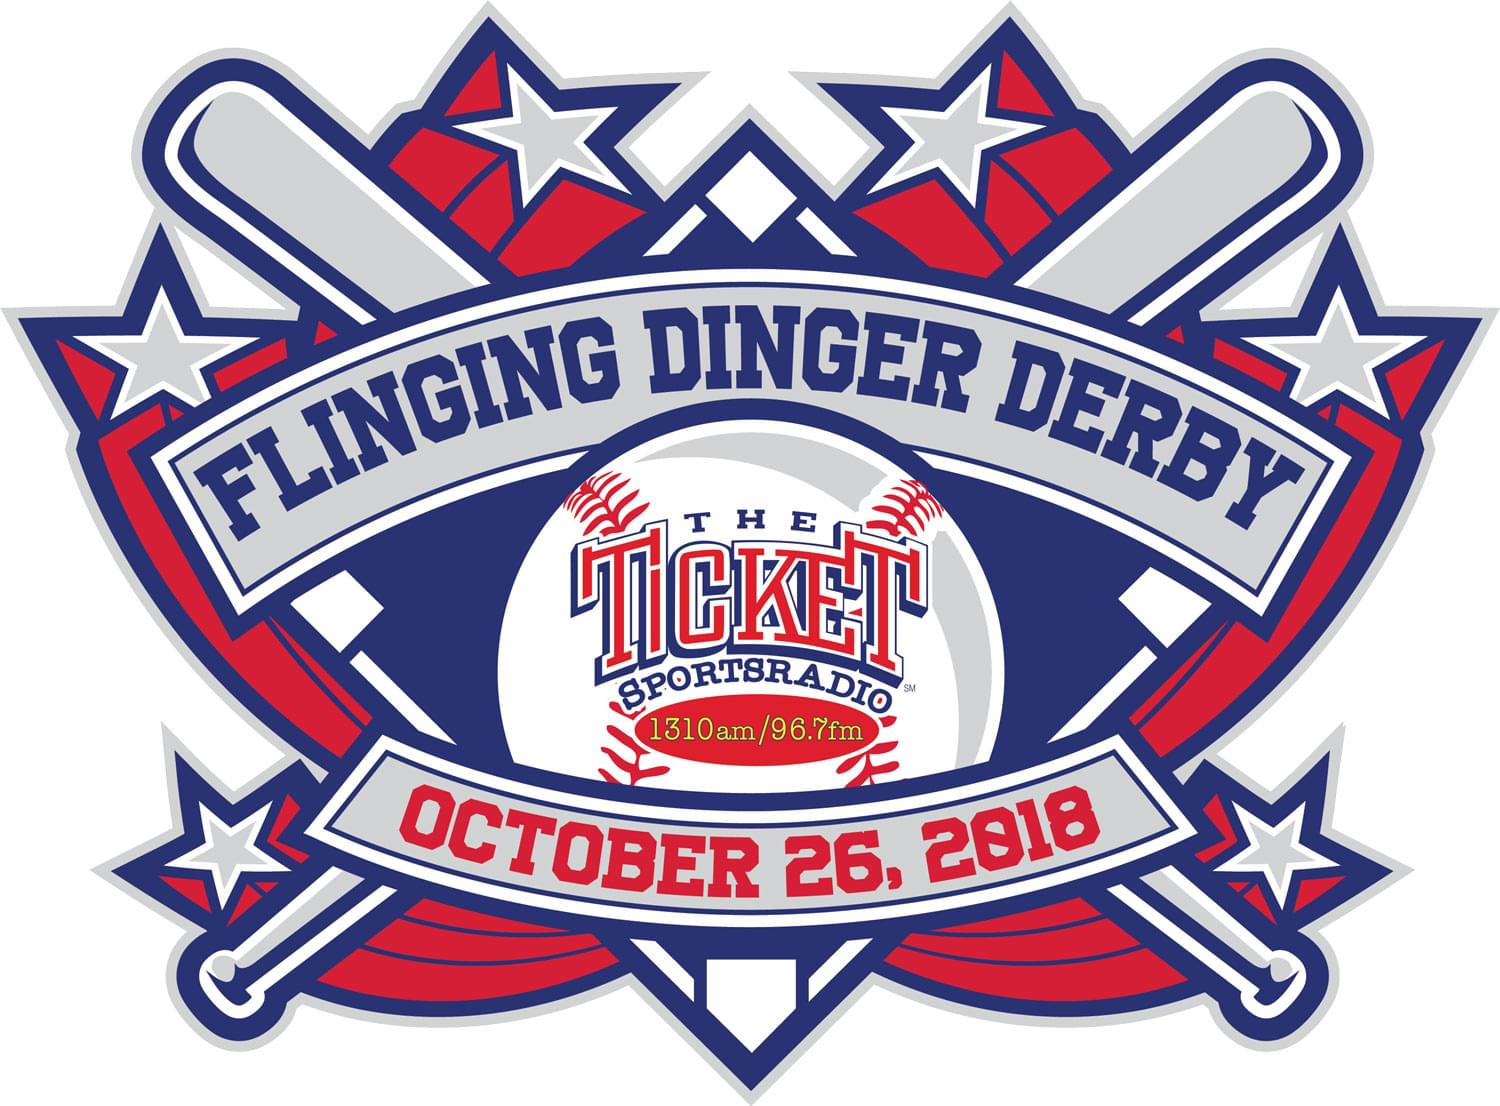 2018 Flinging Dinger Derby